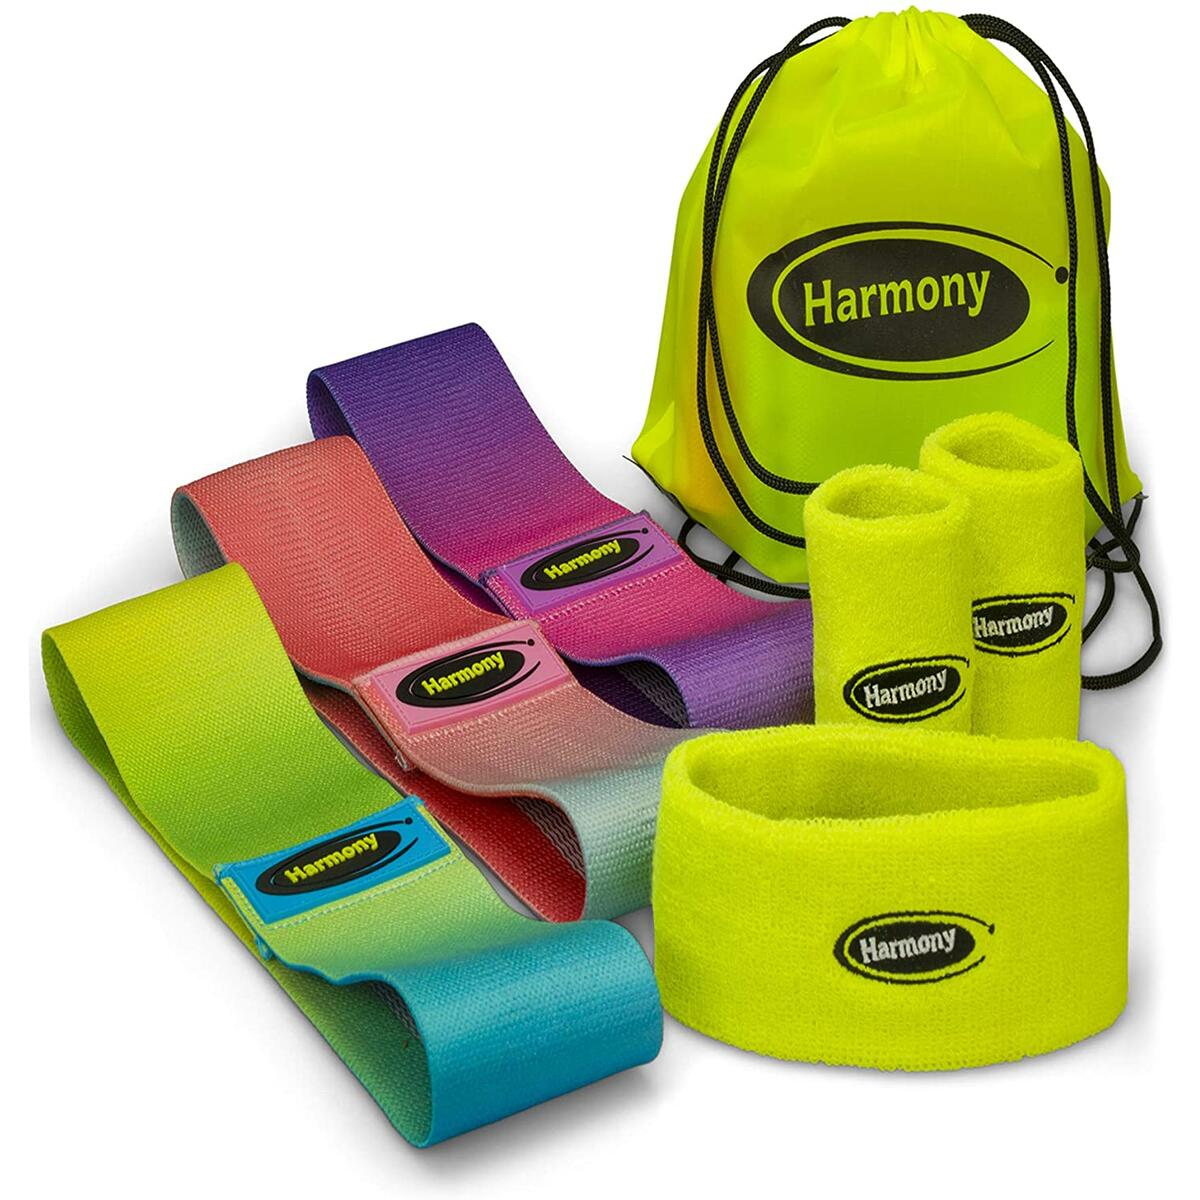 Fabric Resistance Bands Premium Quality with Non-Slip Design for Hips & Glutes, 3 Level Workout Booty Bands Bundled with Sweat Head and Wrist Band in a Backpack (Set of 7)